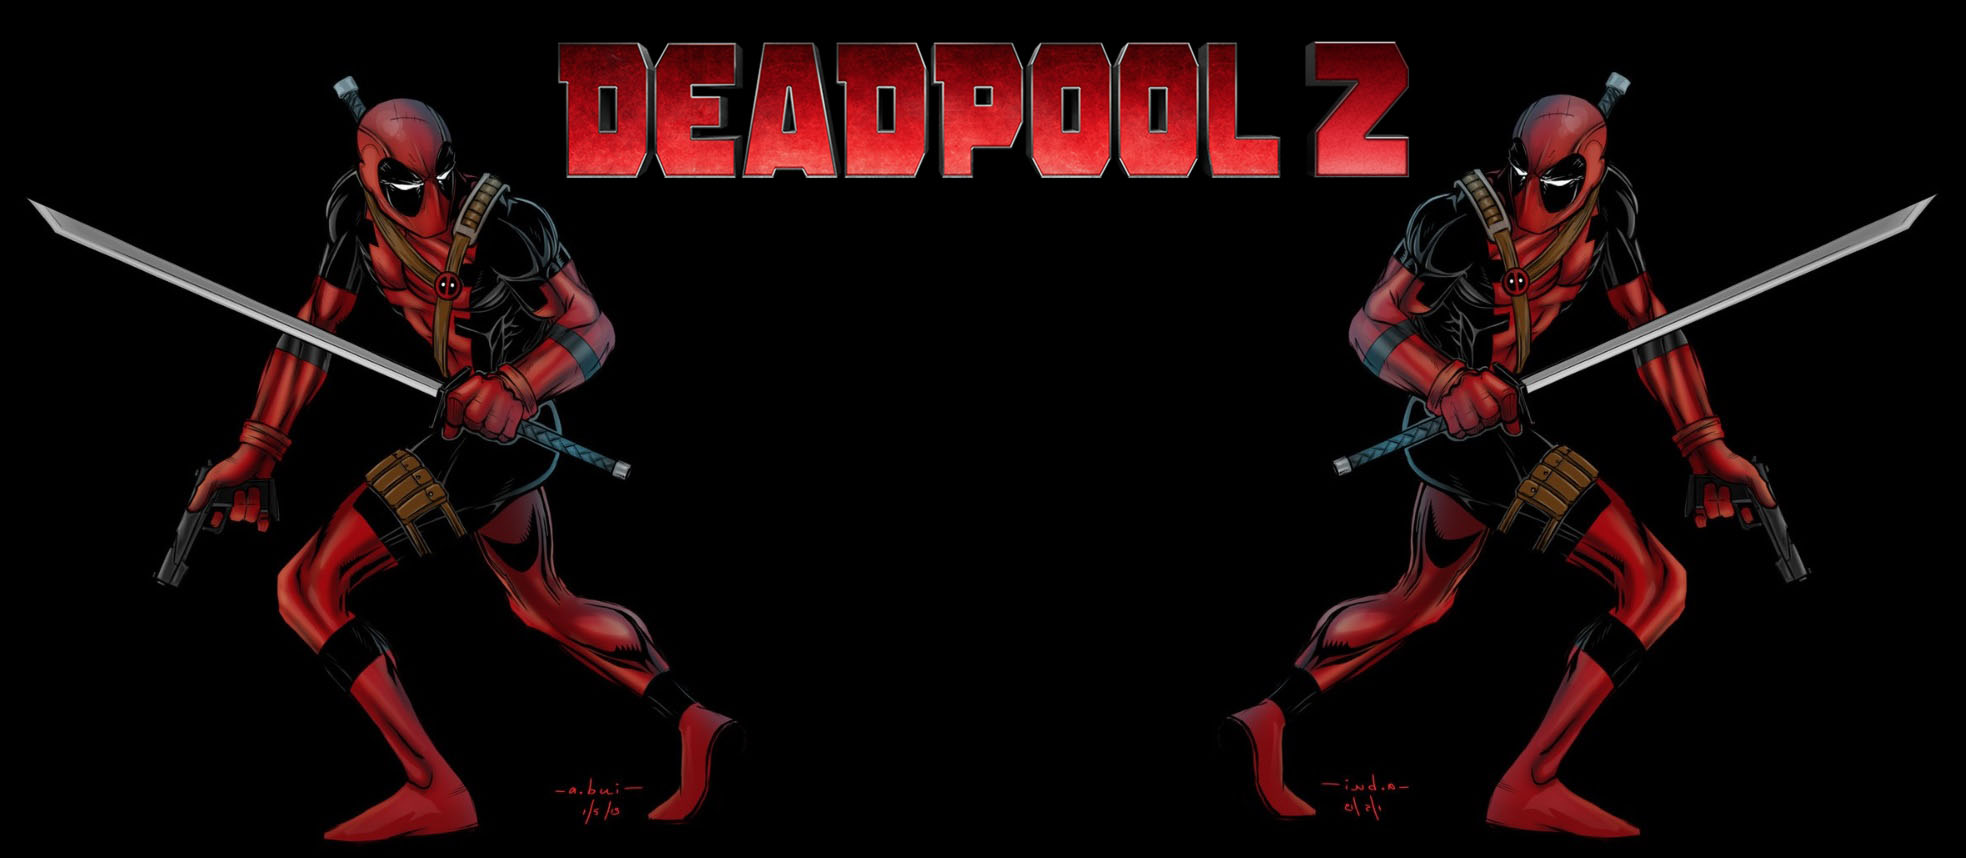 Deadpool 2 Movie 2018 Wiki Story Review Release Date And Budget